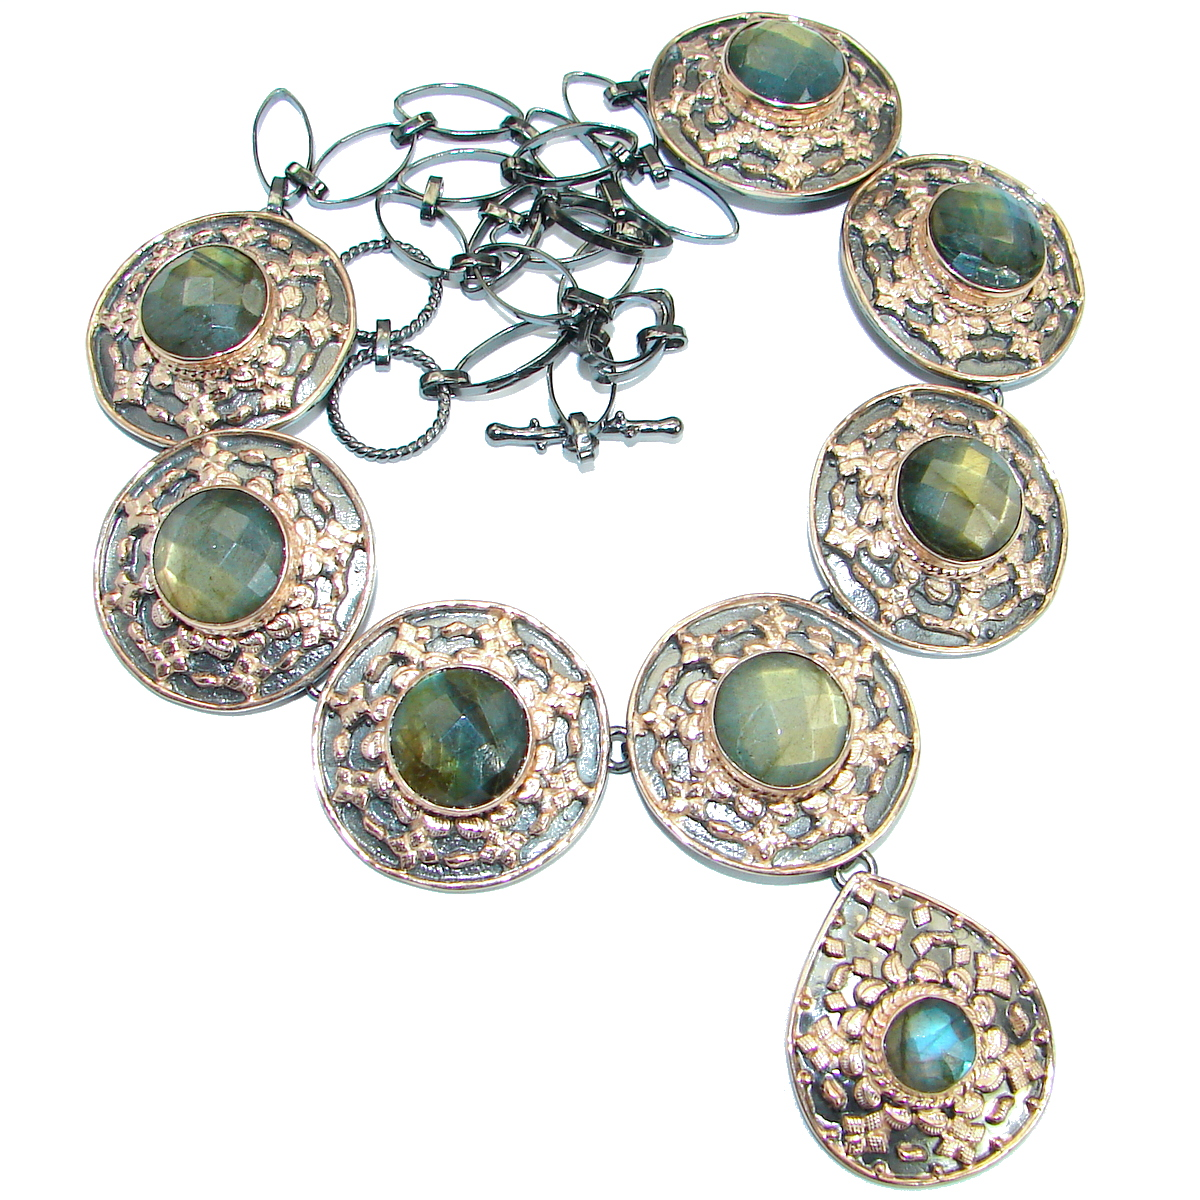 Vintage Design Labradorite Rose Gold .925 Sterling Silver entirely handcrafted necklace